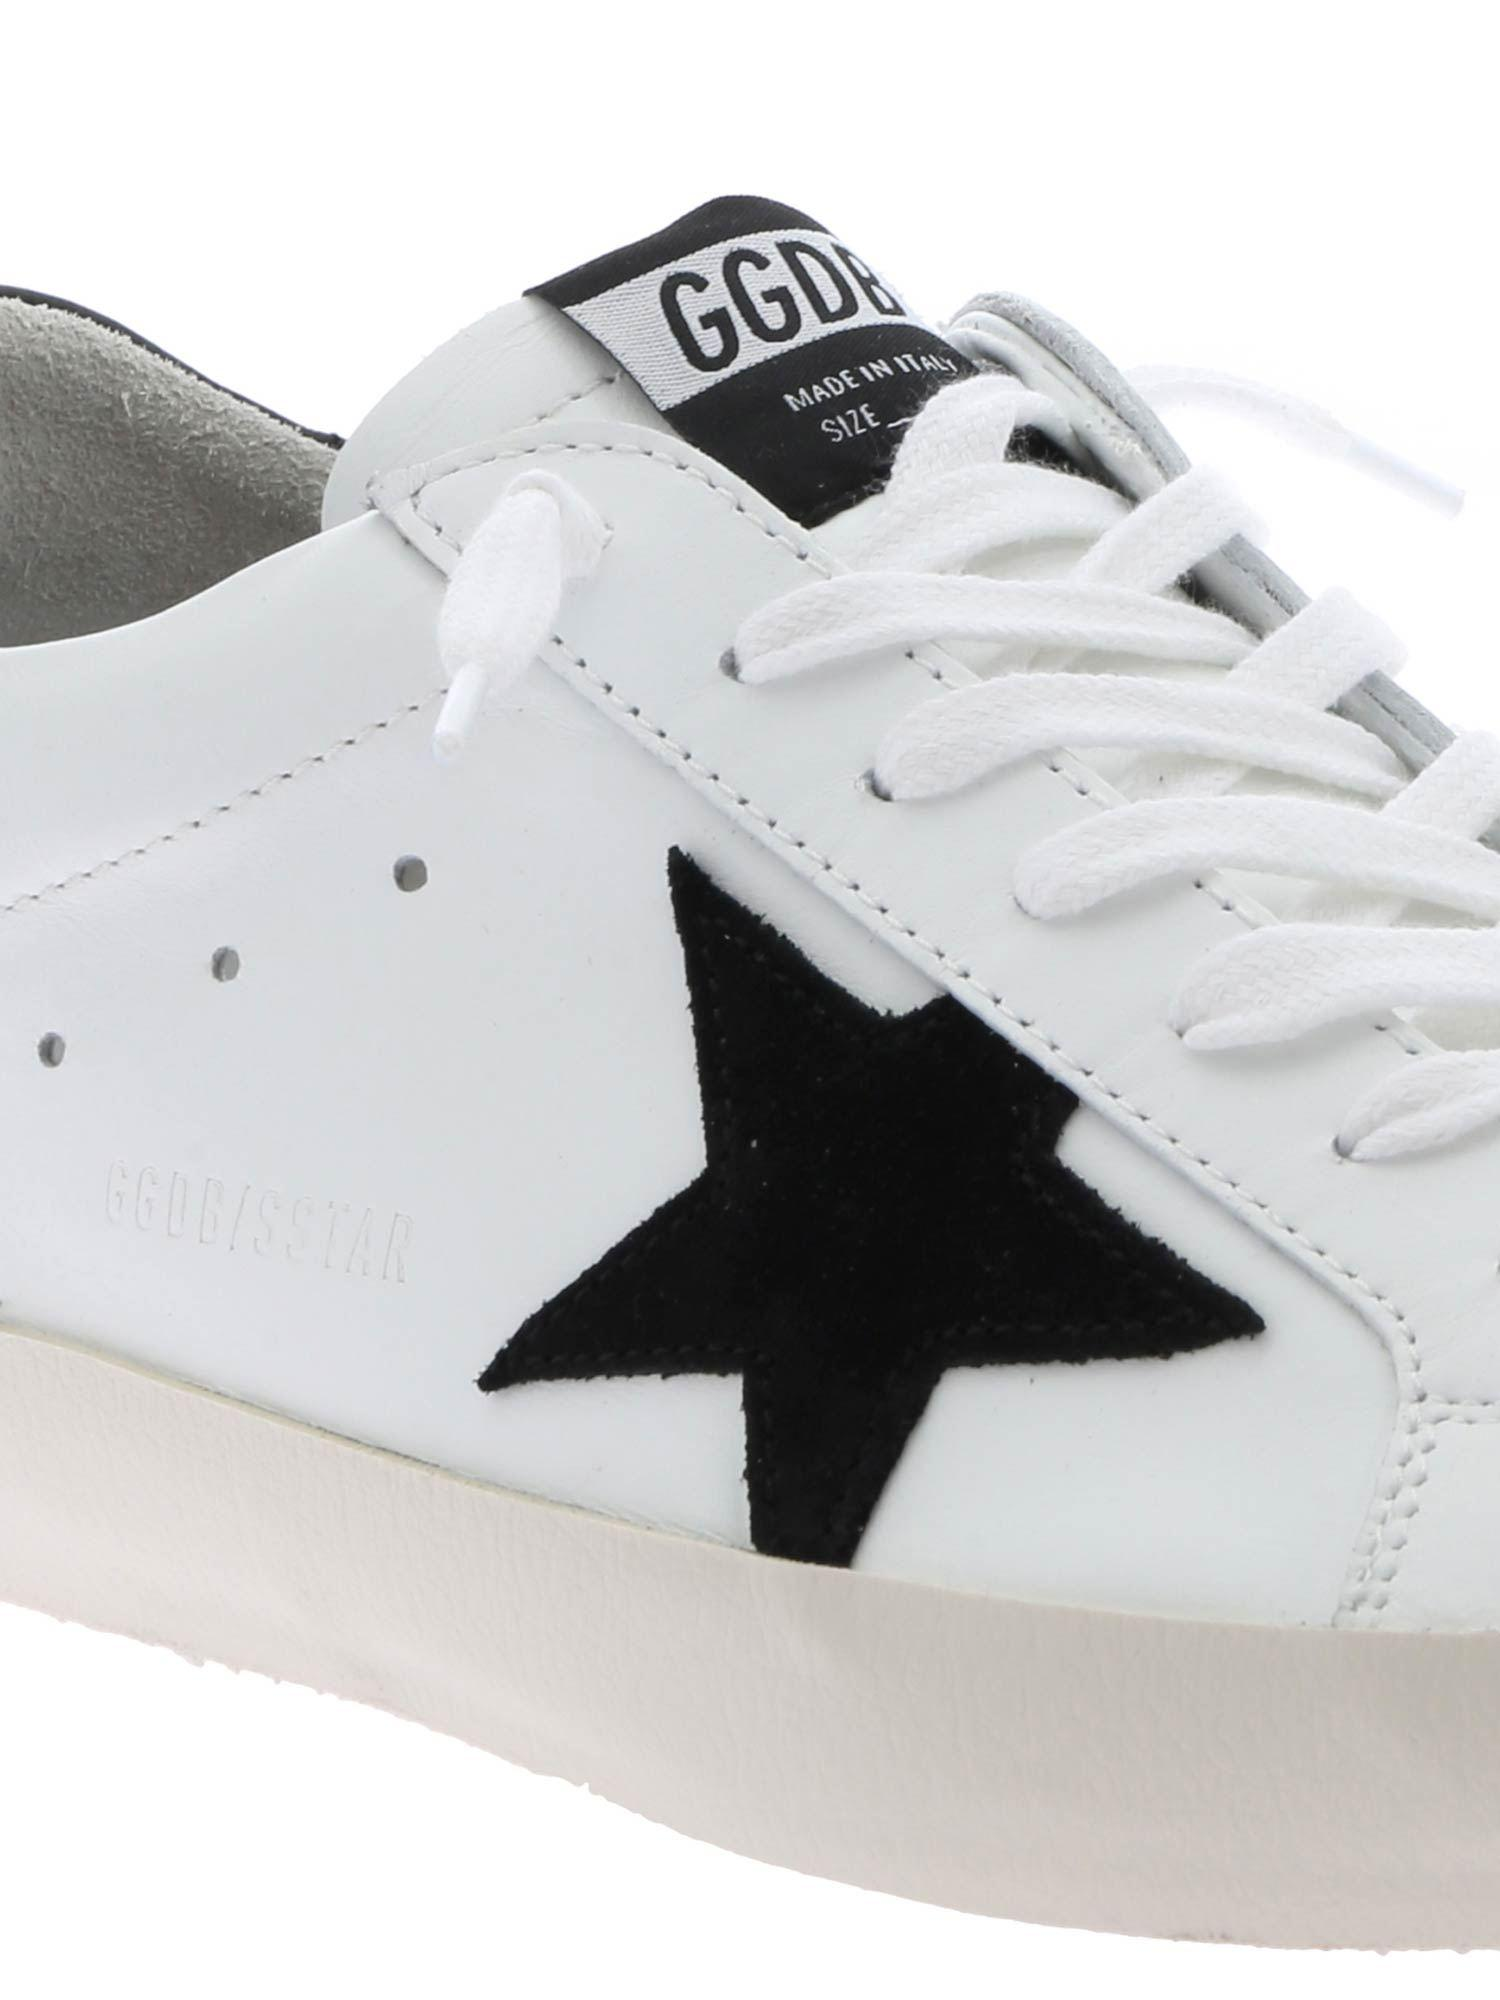 d757b56fd534b Golden Goose Deluxe Brand - Superstar GGDB Sneakers In White for Men -  Lyst. View fullscreen